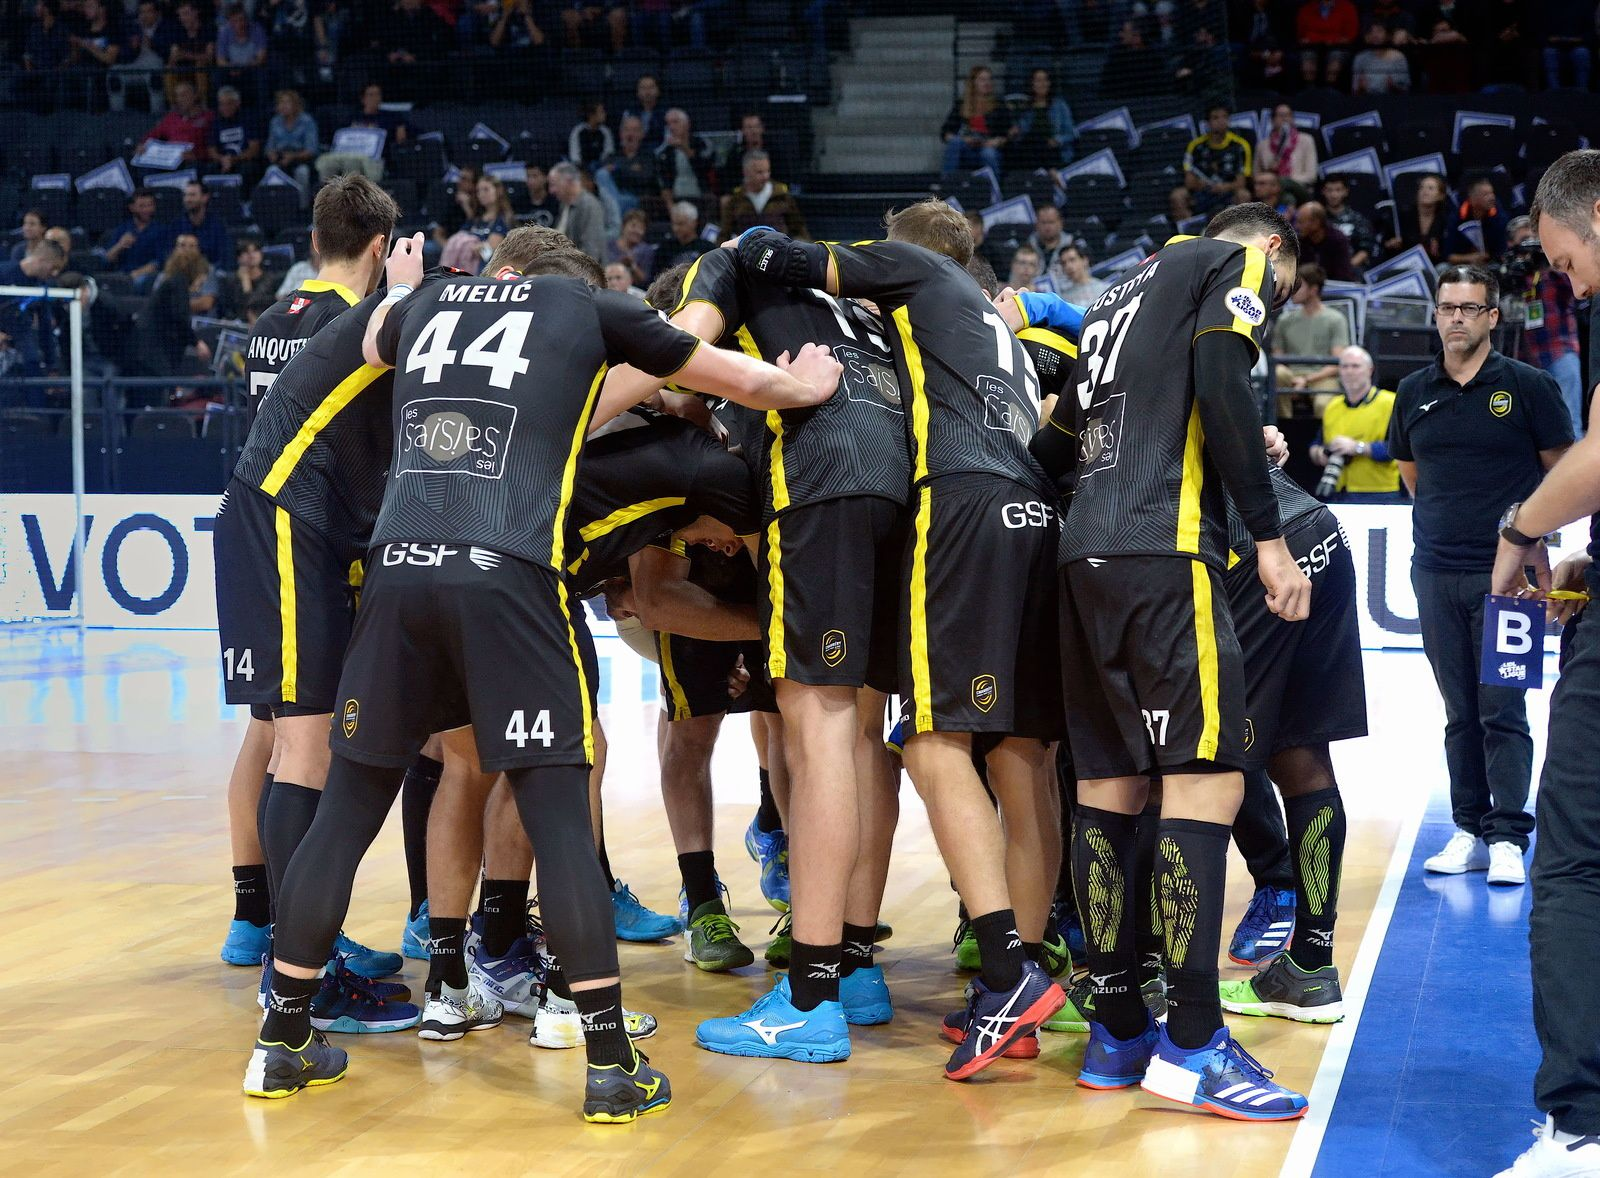 CDF CHAMBERY / MONTPELLIER DIMANCHE 7 AVRIL 2019 - 20:00